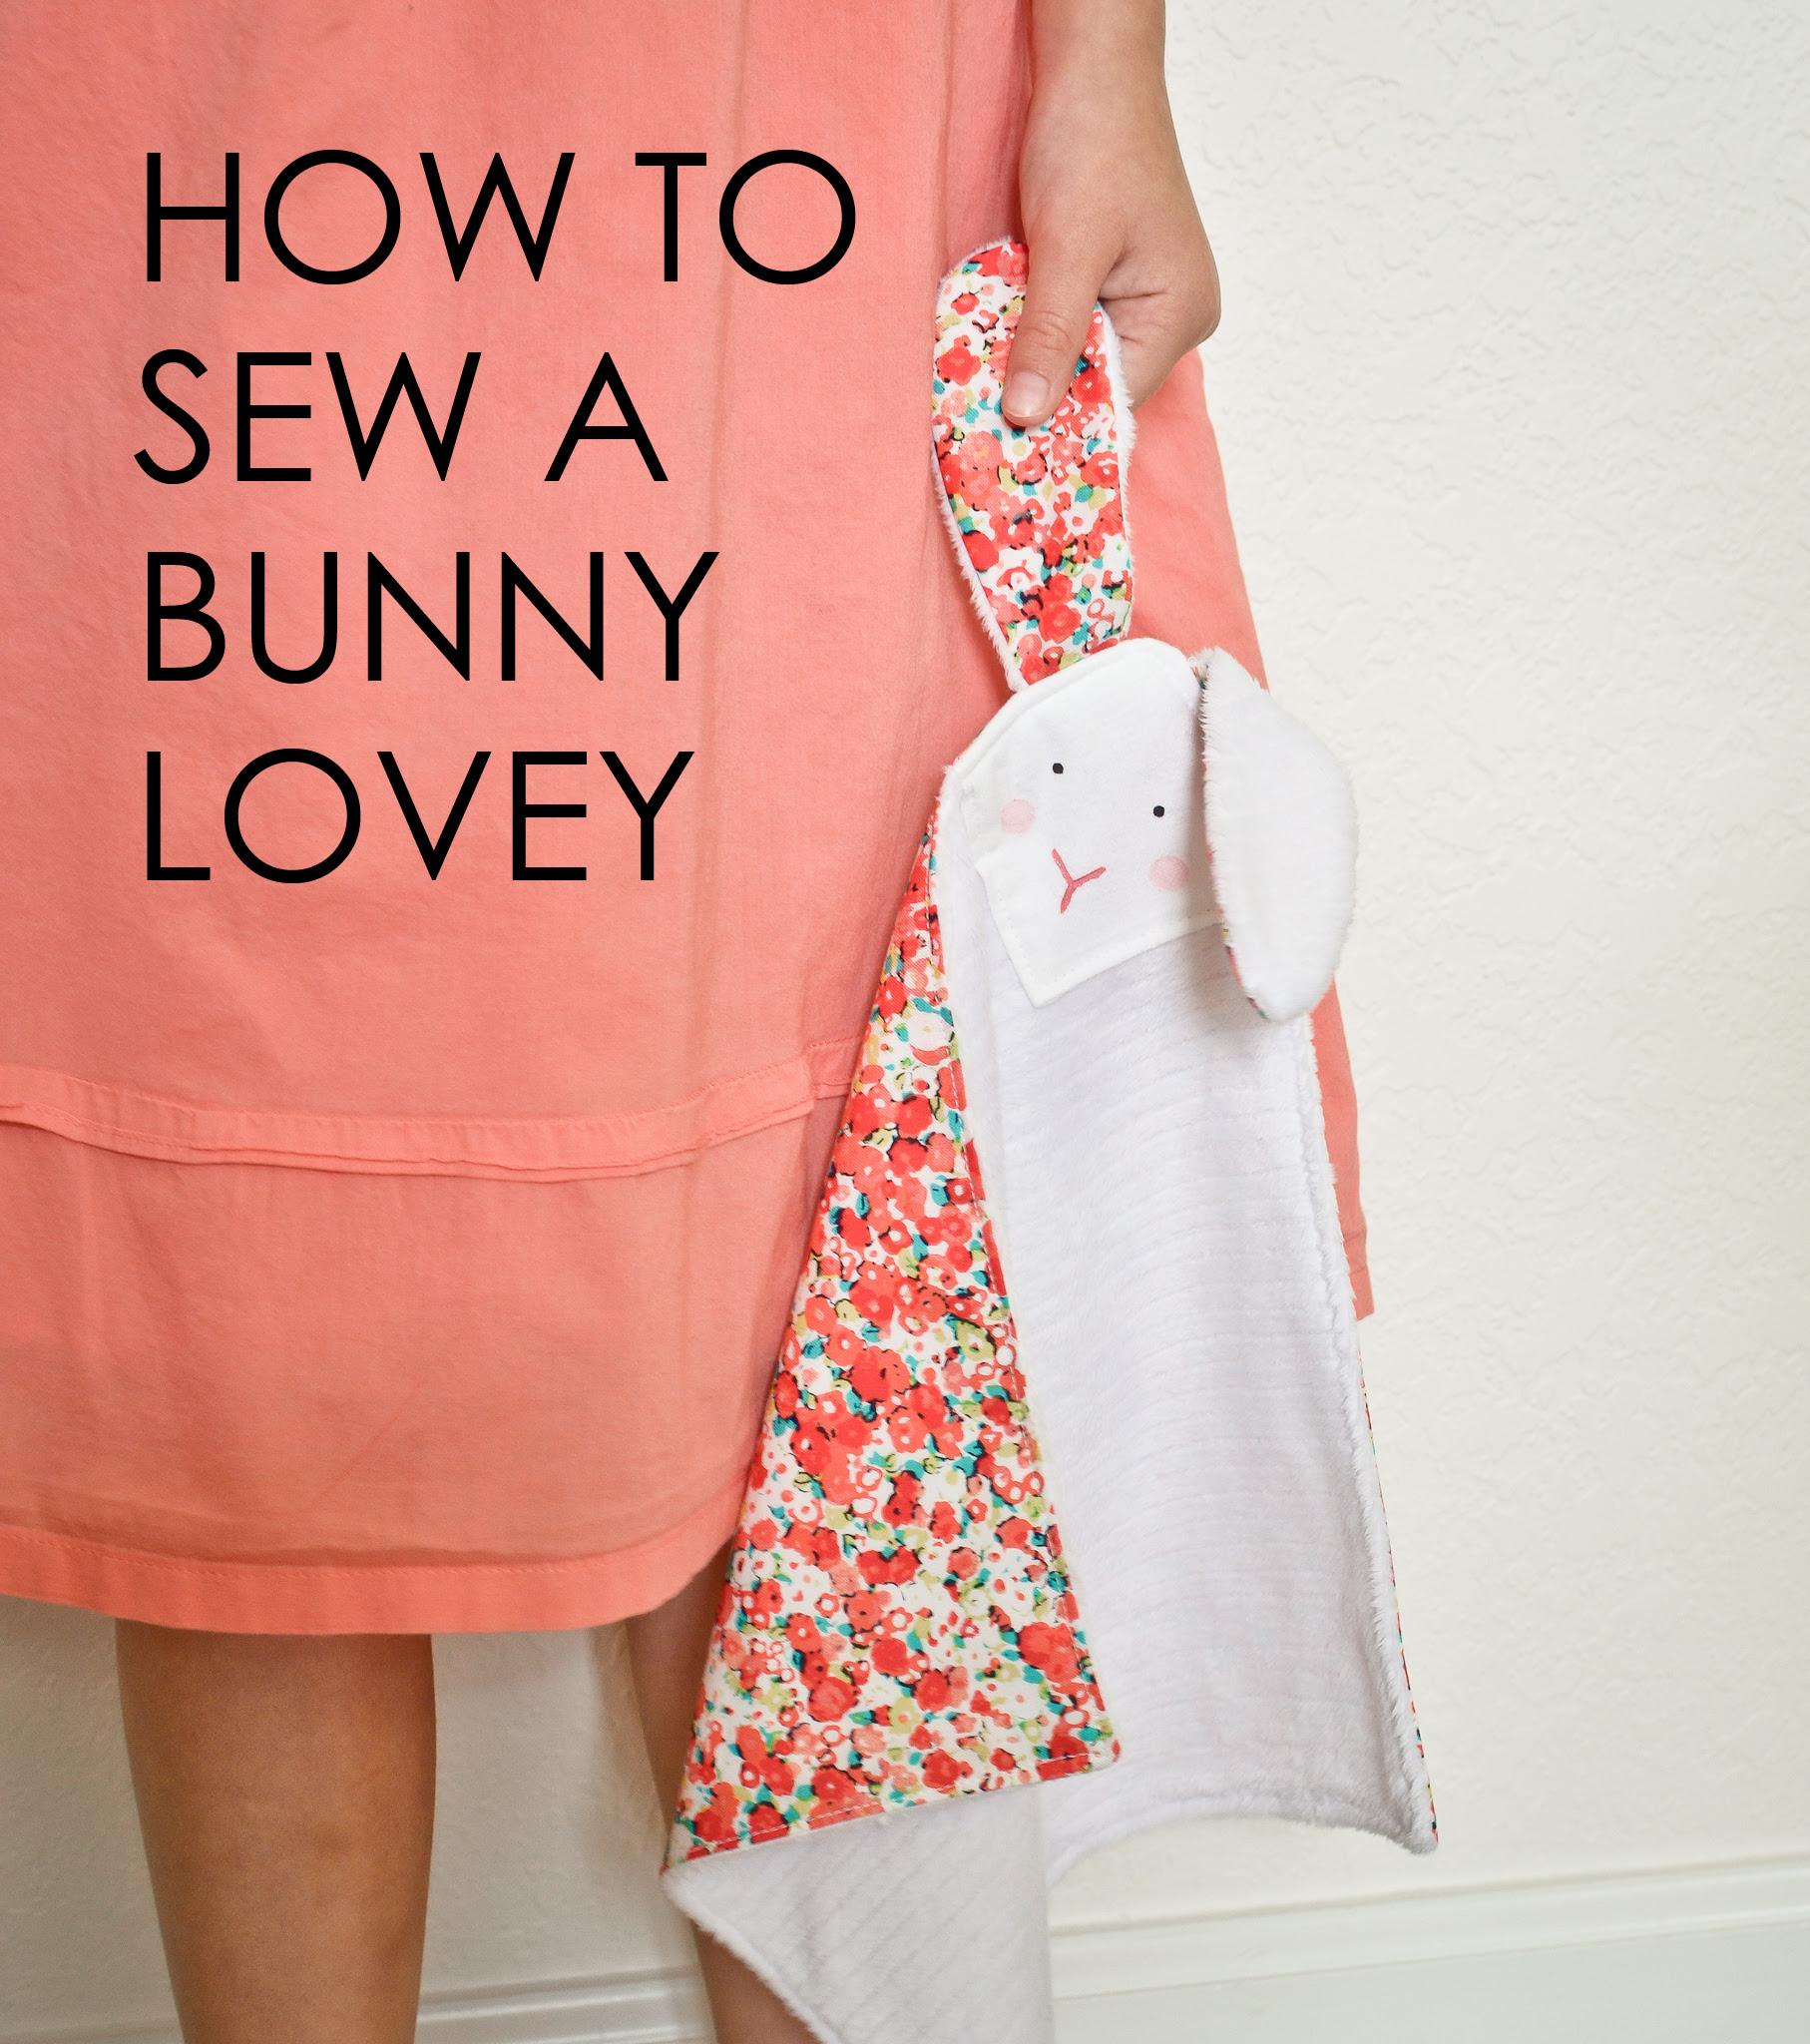 How to Sew a Bunny Lovey